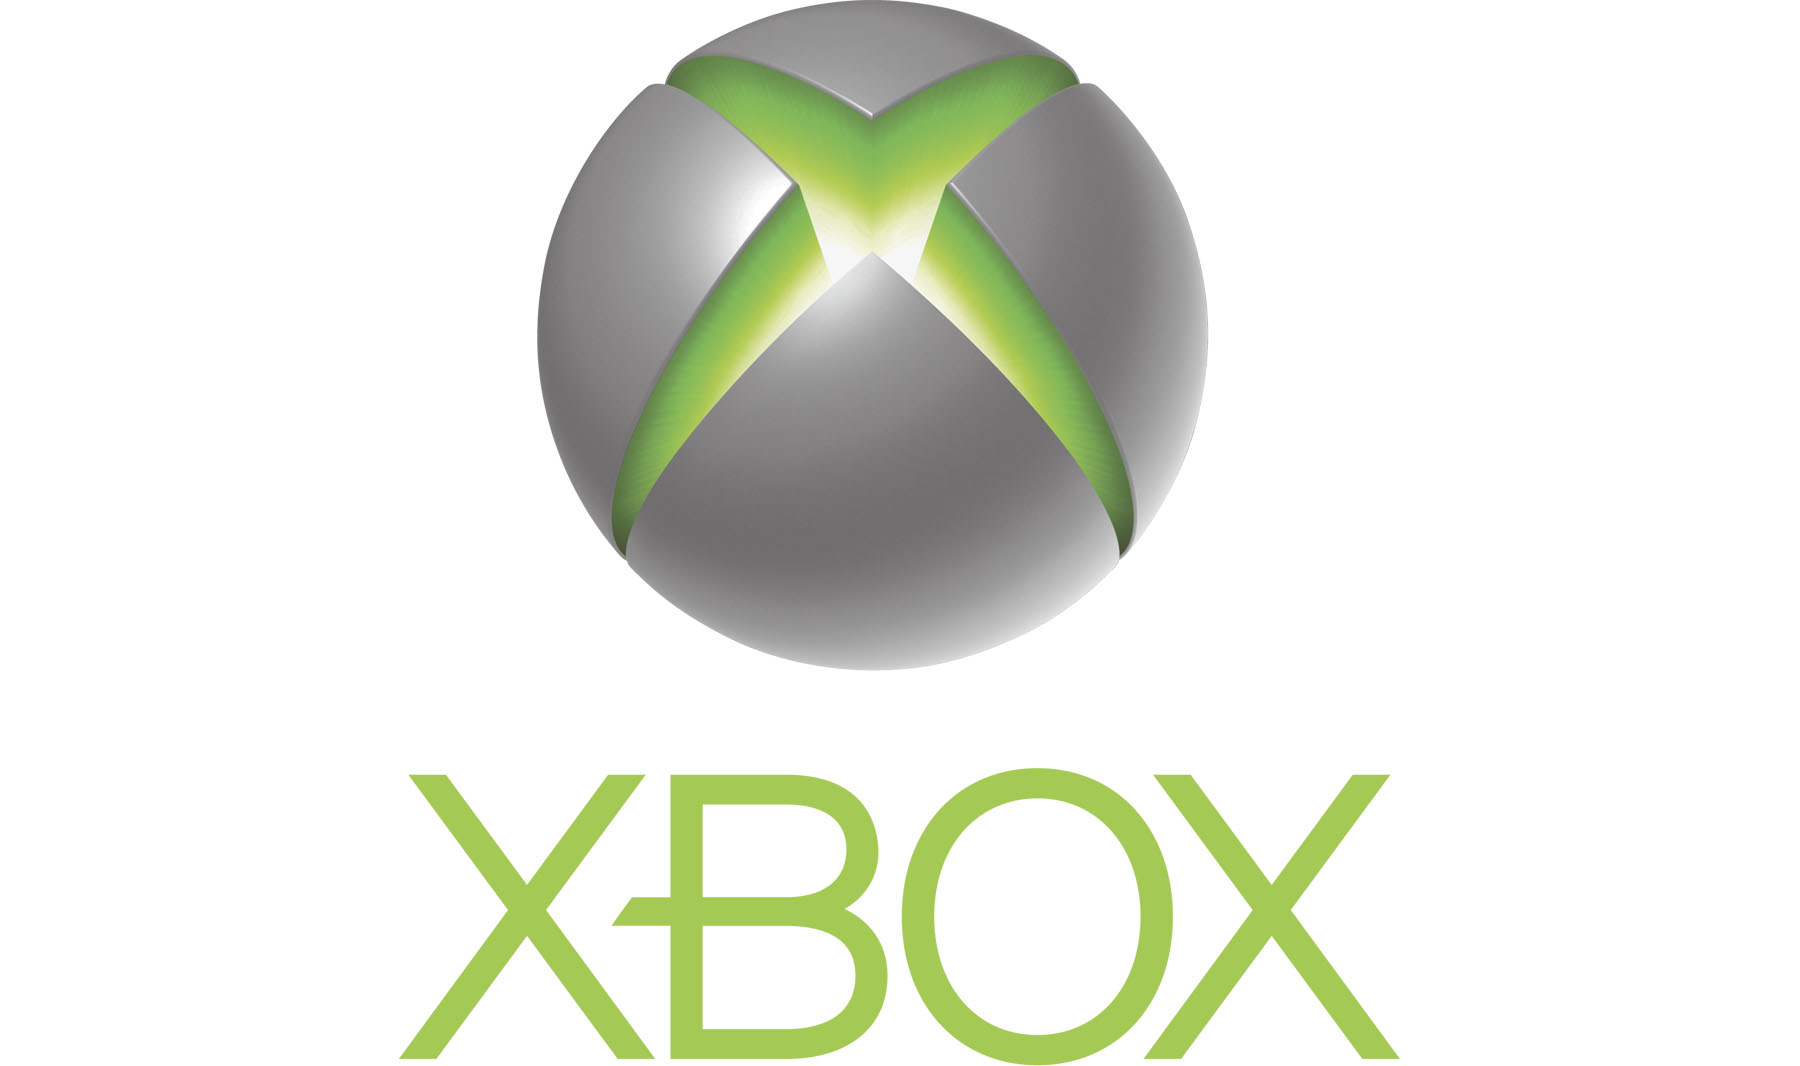 Xbox Event: 5 Things That Could Ruin The Reveal